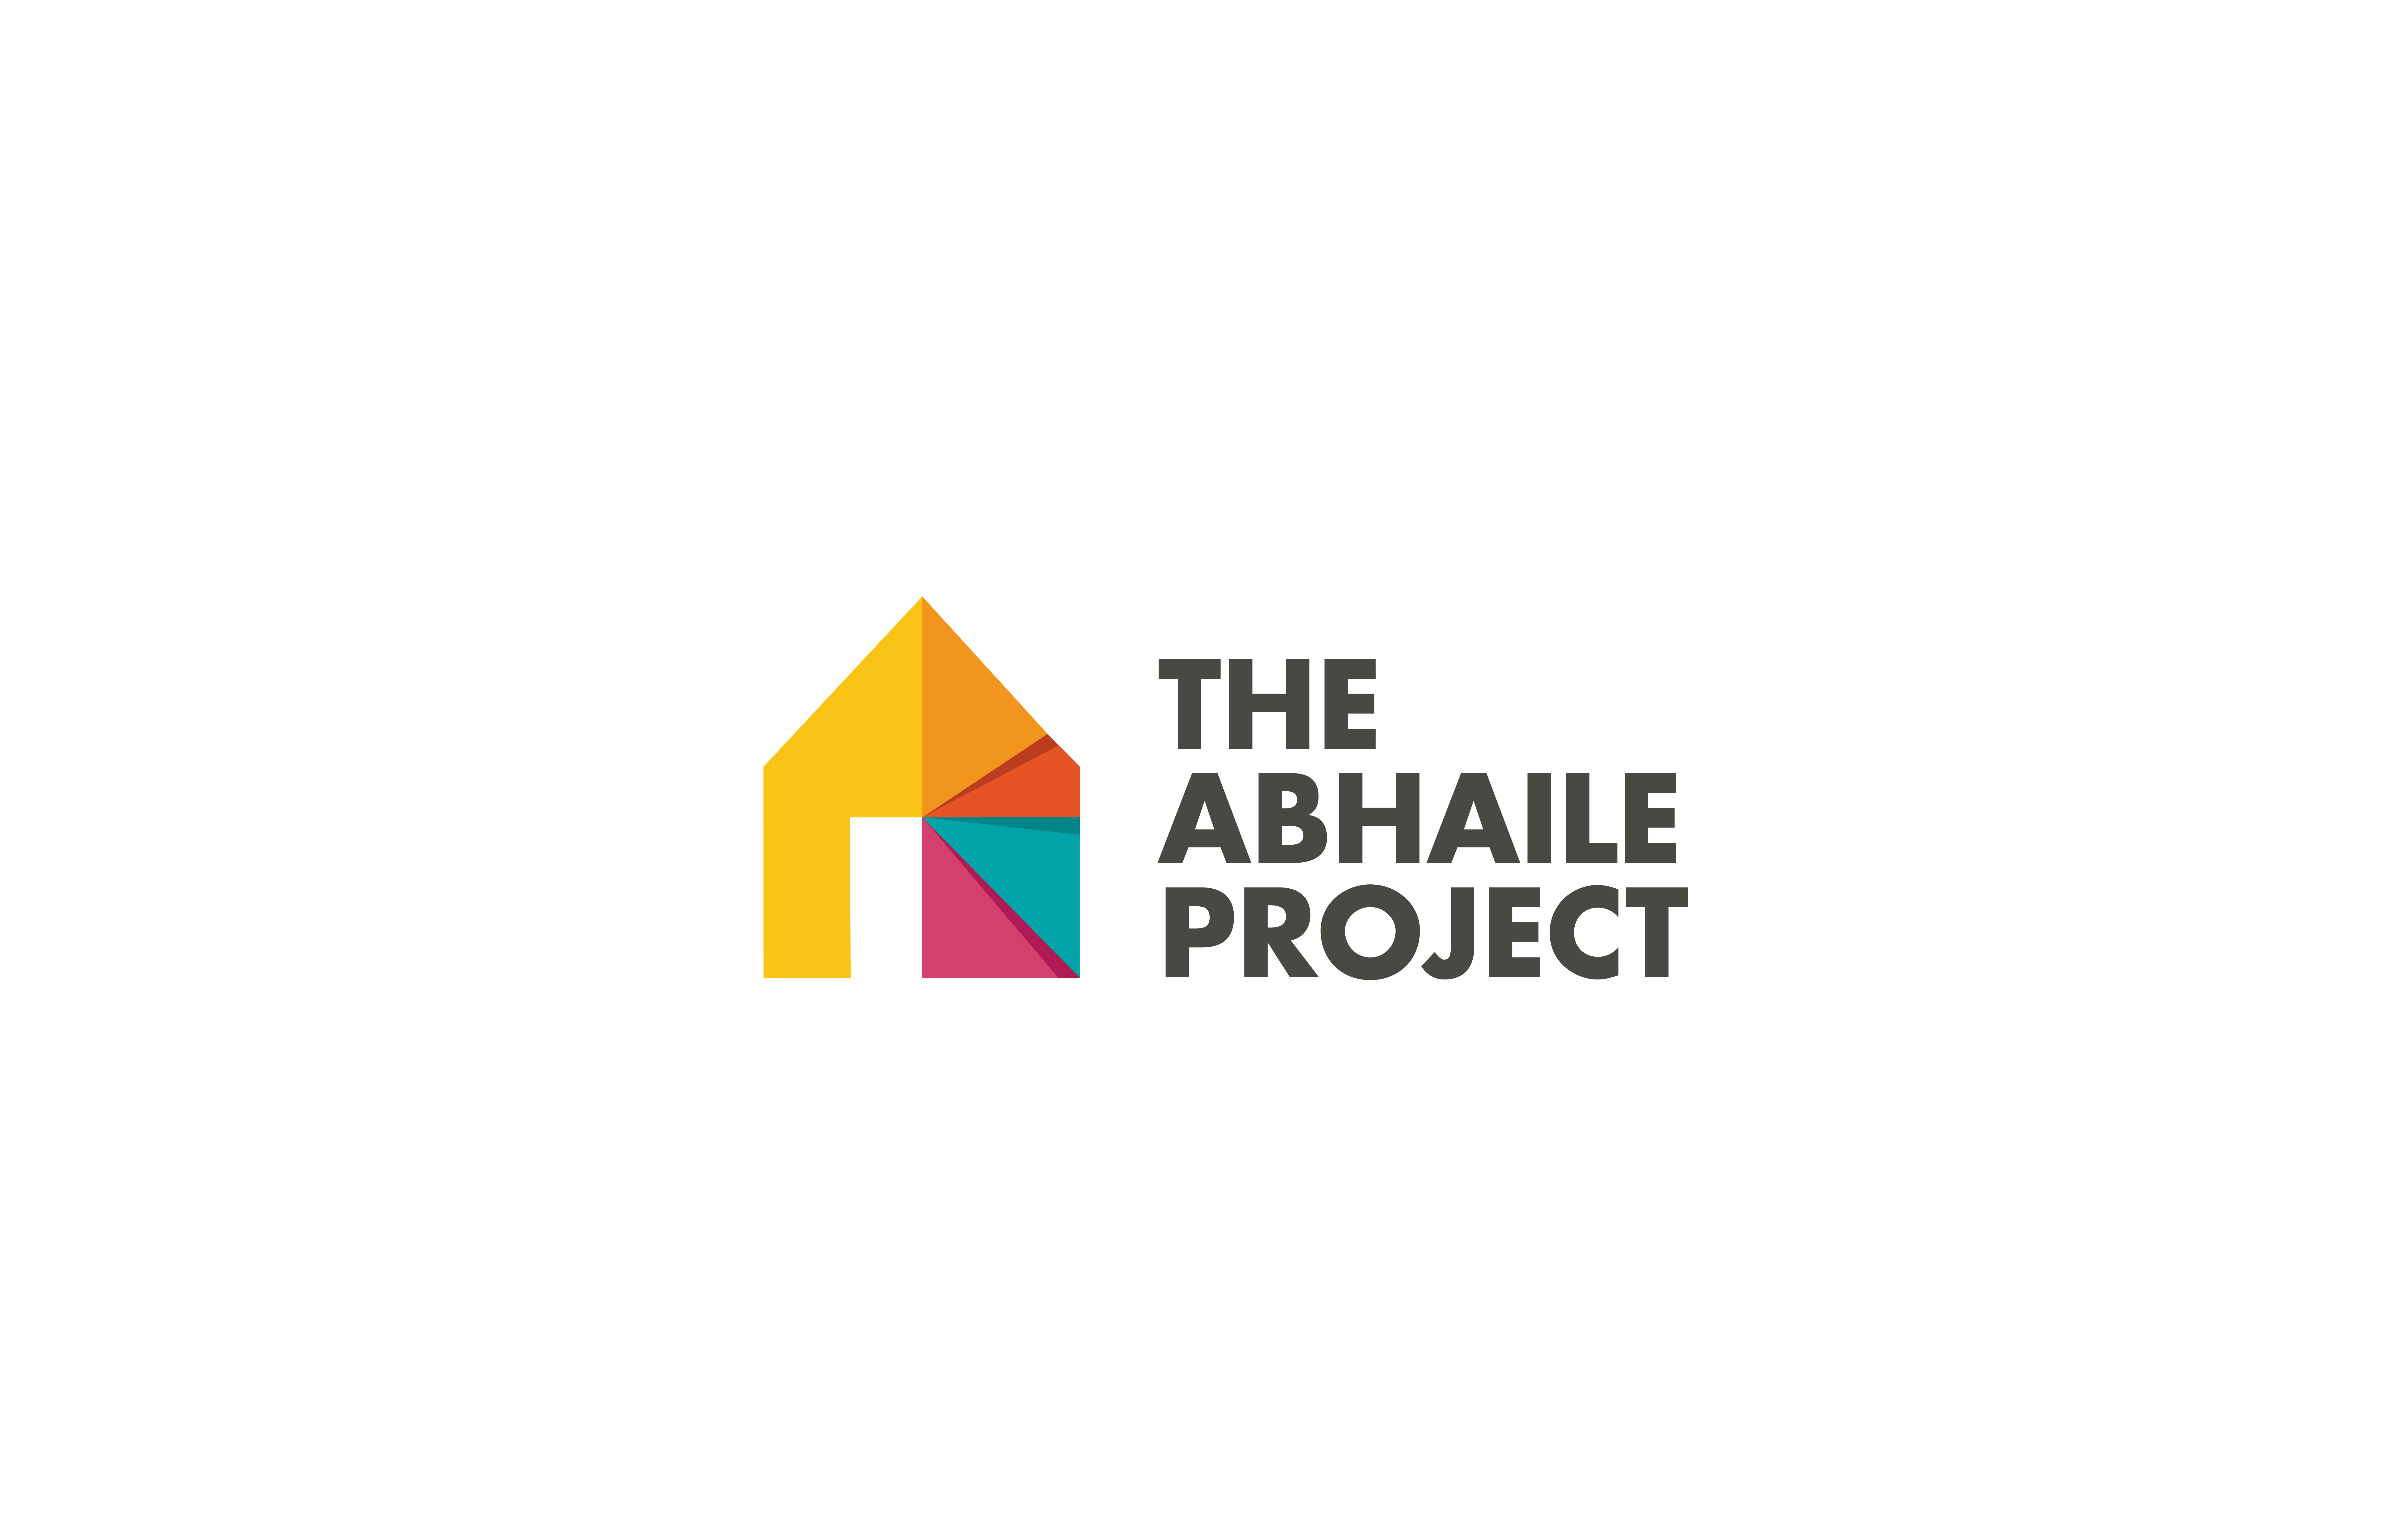 Cover image: The Abhaile Project